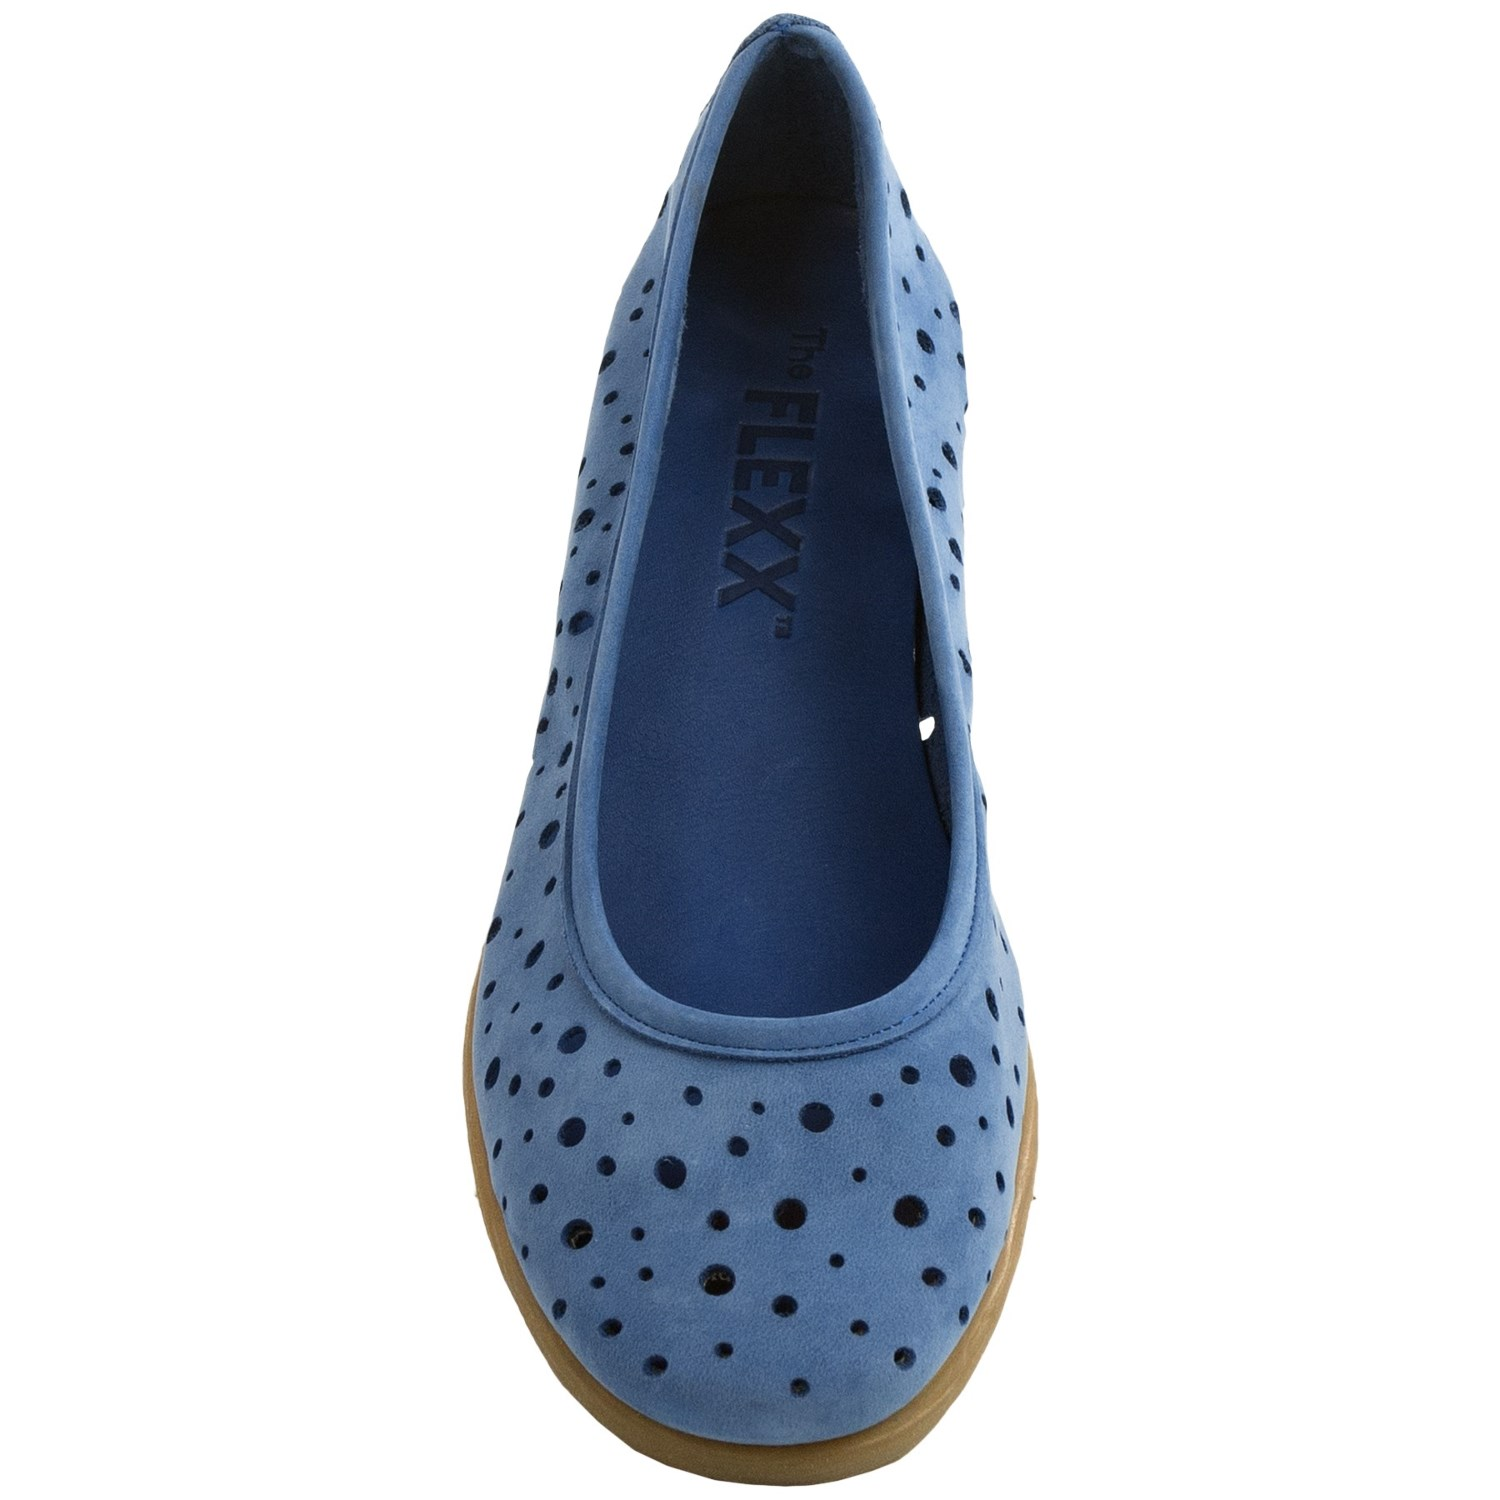 Marshalls Shoes Online